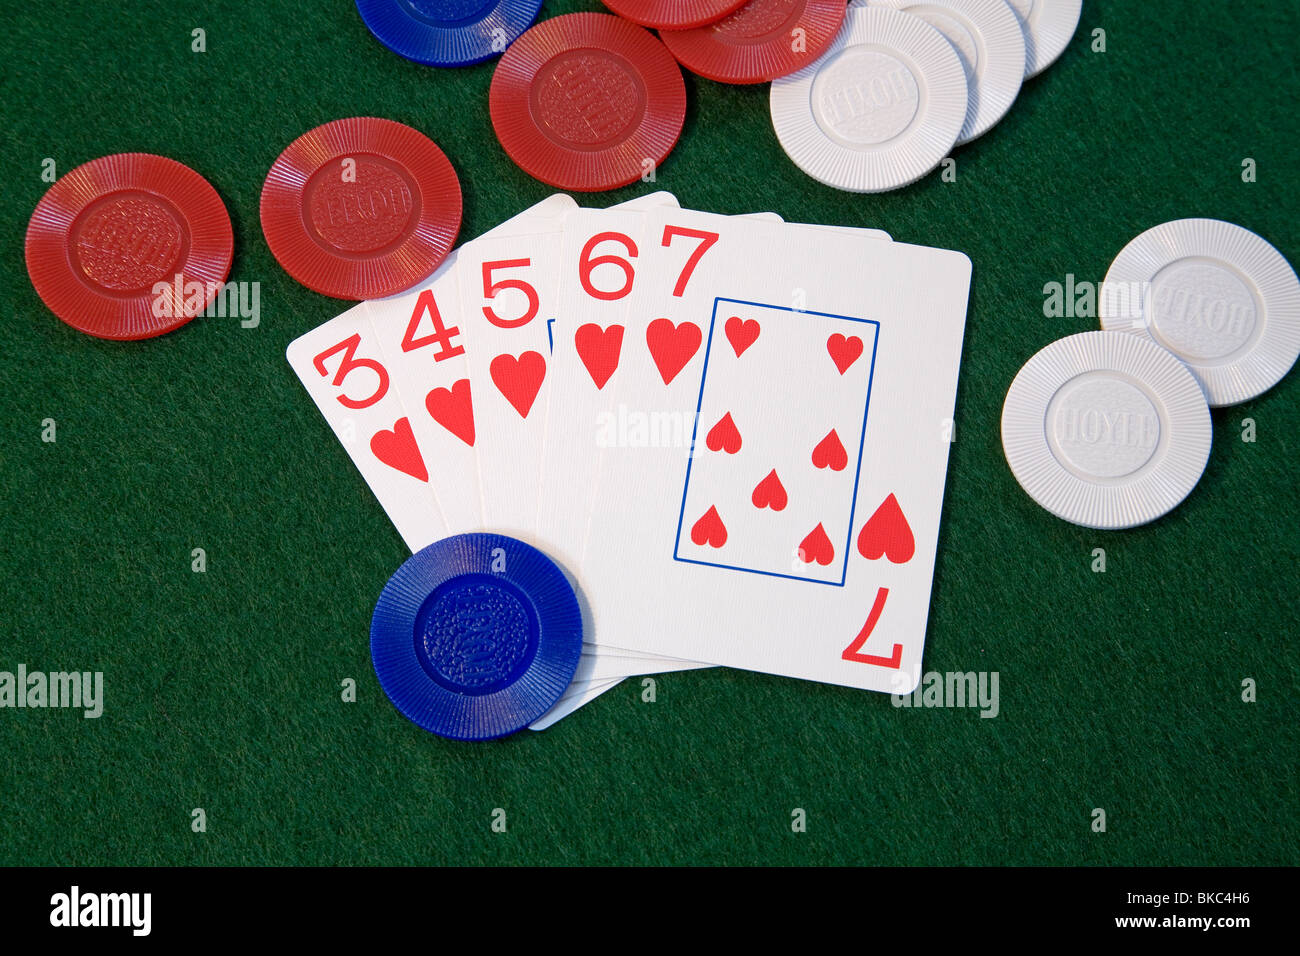 A 'straight flush' poker hand, of hearts, in five card draw or stud poker - Stock Image